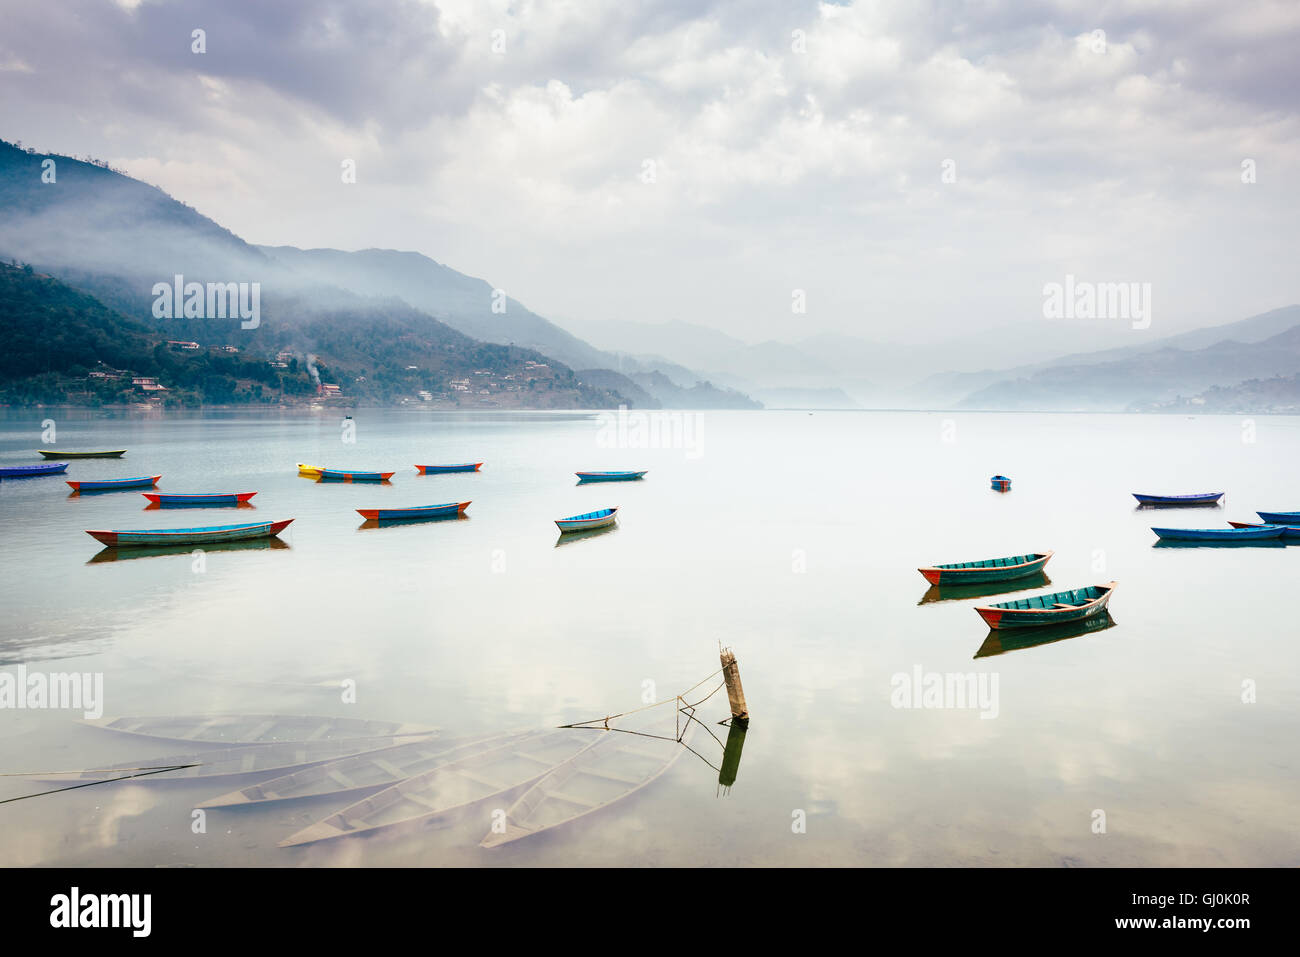 Boats on Phewa Lake in Pokhara, three sunken ones in the foreground, Nepal. - Stock Image